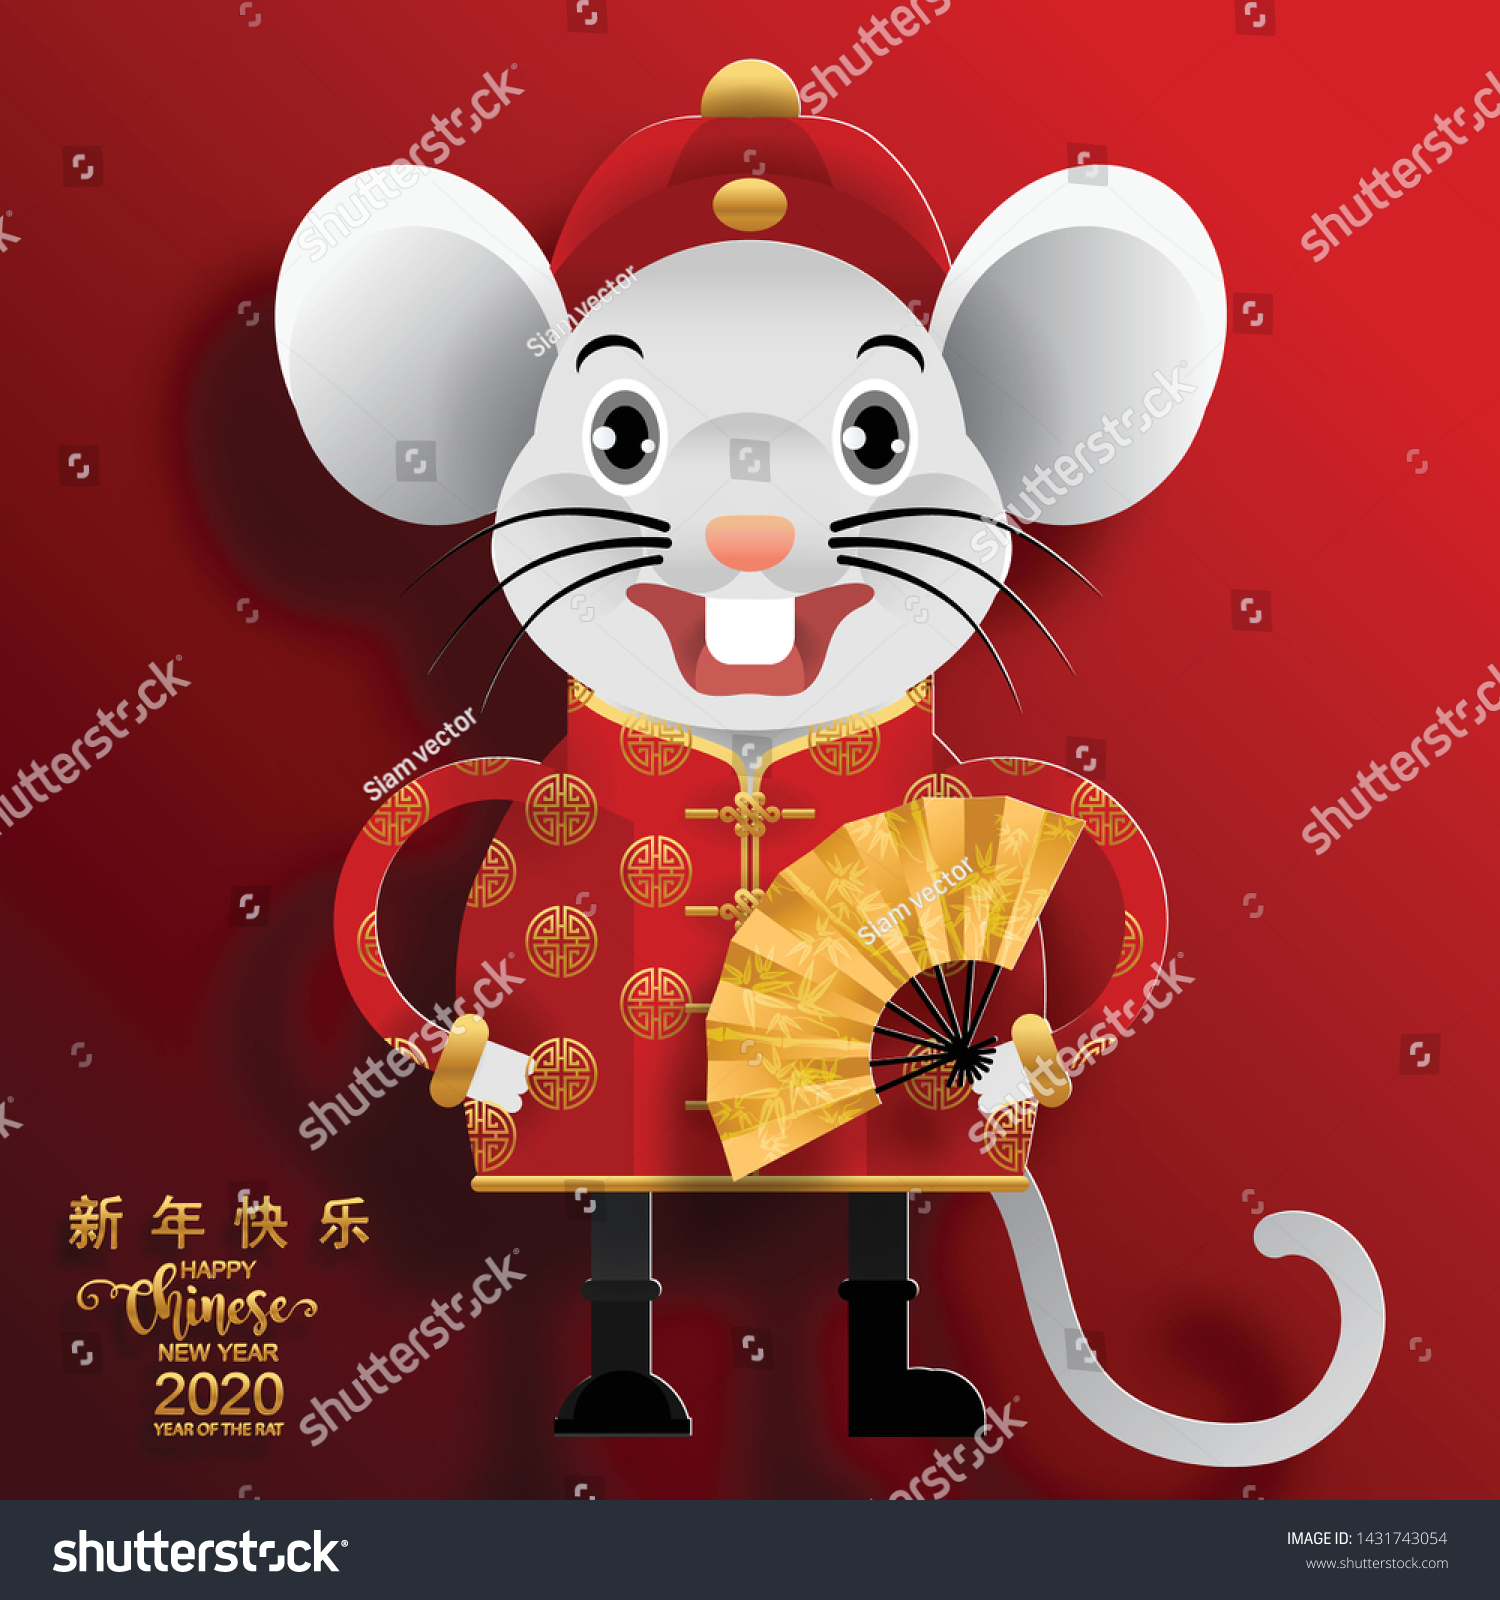 chinese new year 2020 year rat stock vector royalty free 1431743054 https www shutterstock com image vector chinese new year 2020 rat red 1431743054